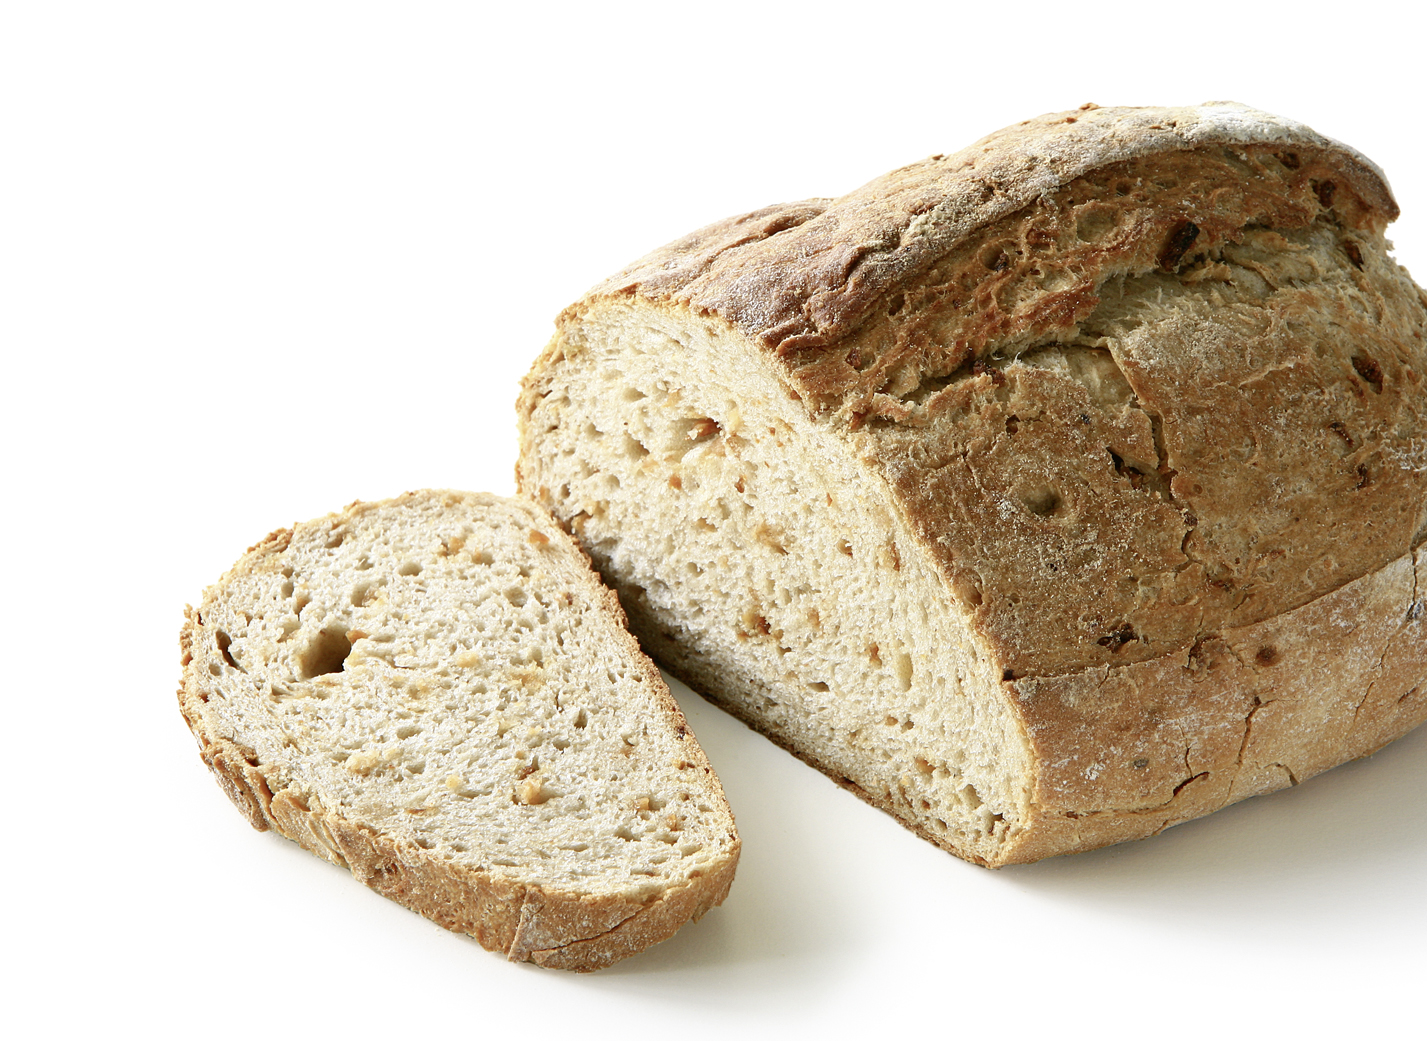 Onion Bread - Wheat bread with 47% wheat flour and 5.5% roasted onions length: 22.5 cm